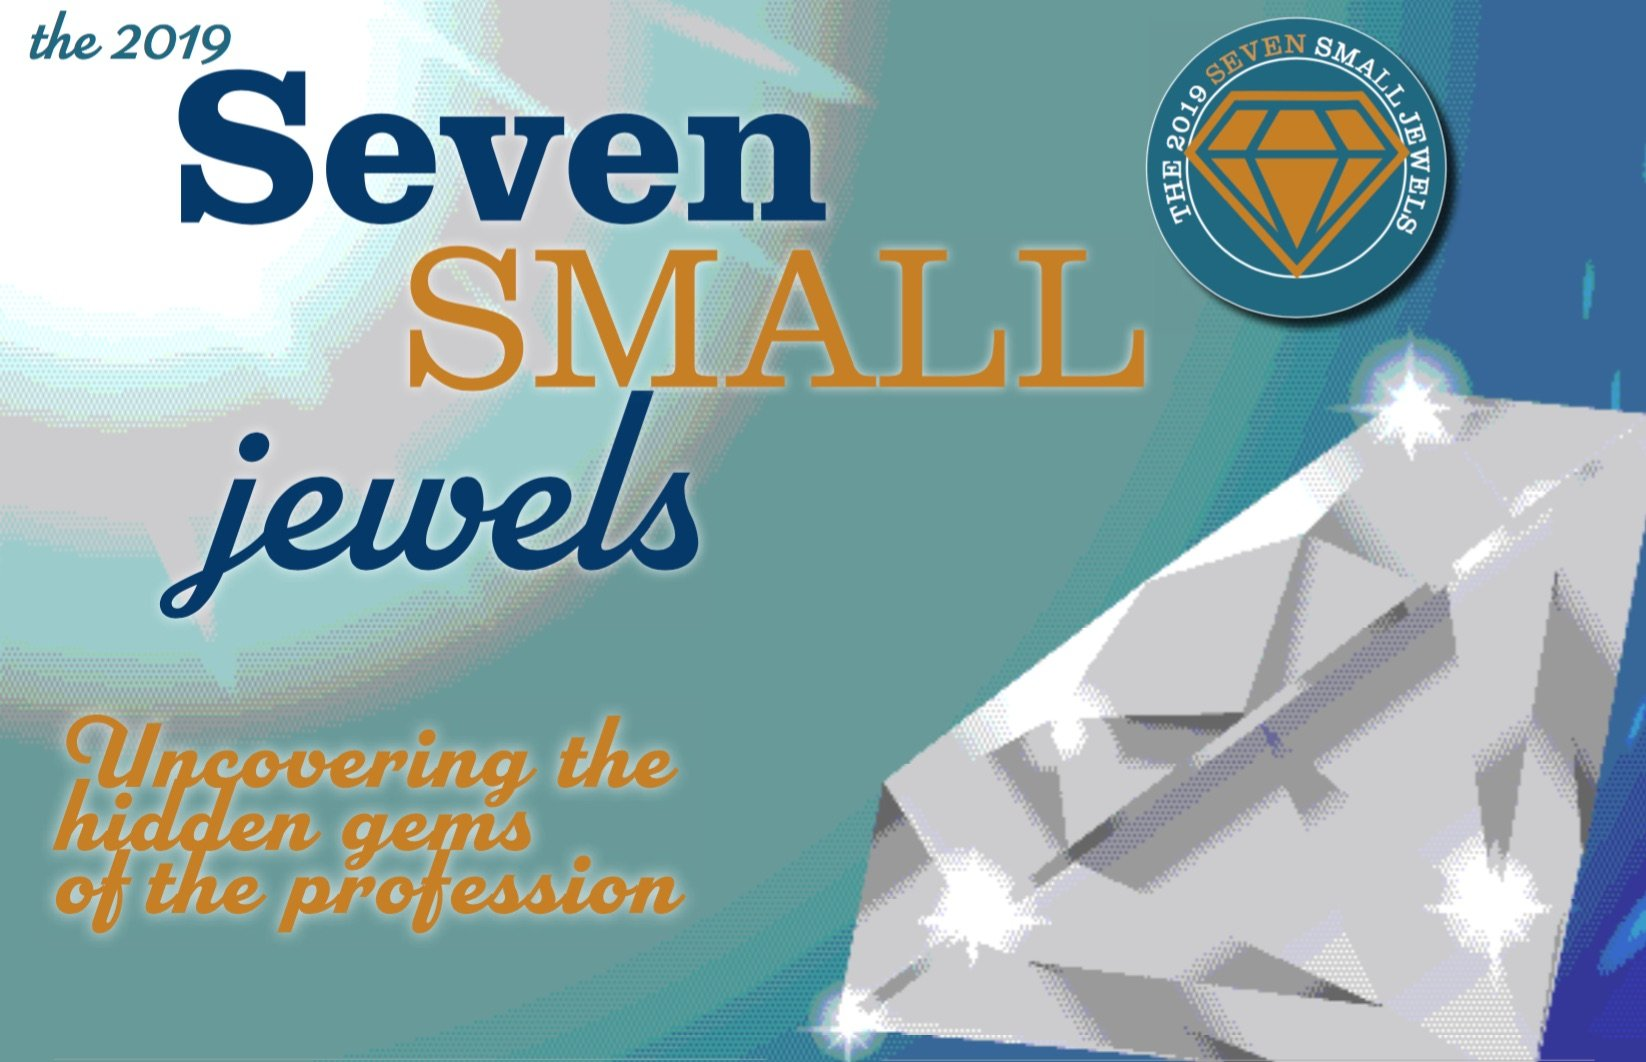 The 2019 Seven Small Jewels: Uncovering the Hidden Gems of the Profession